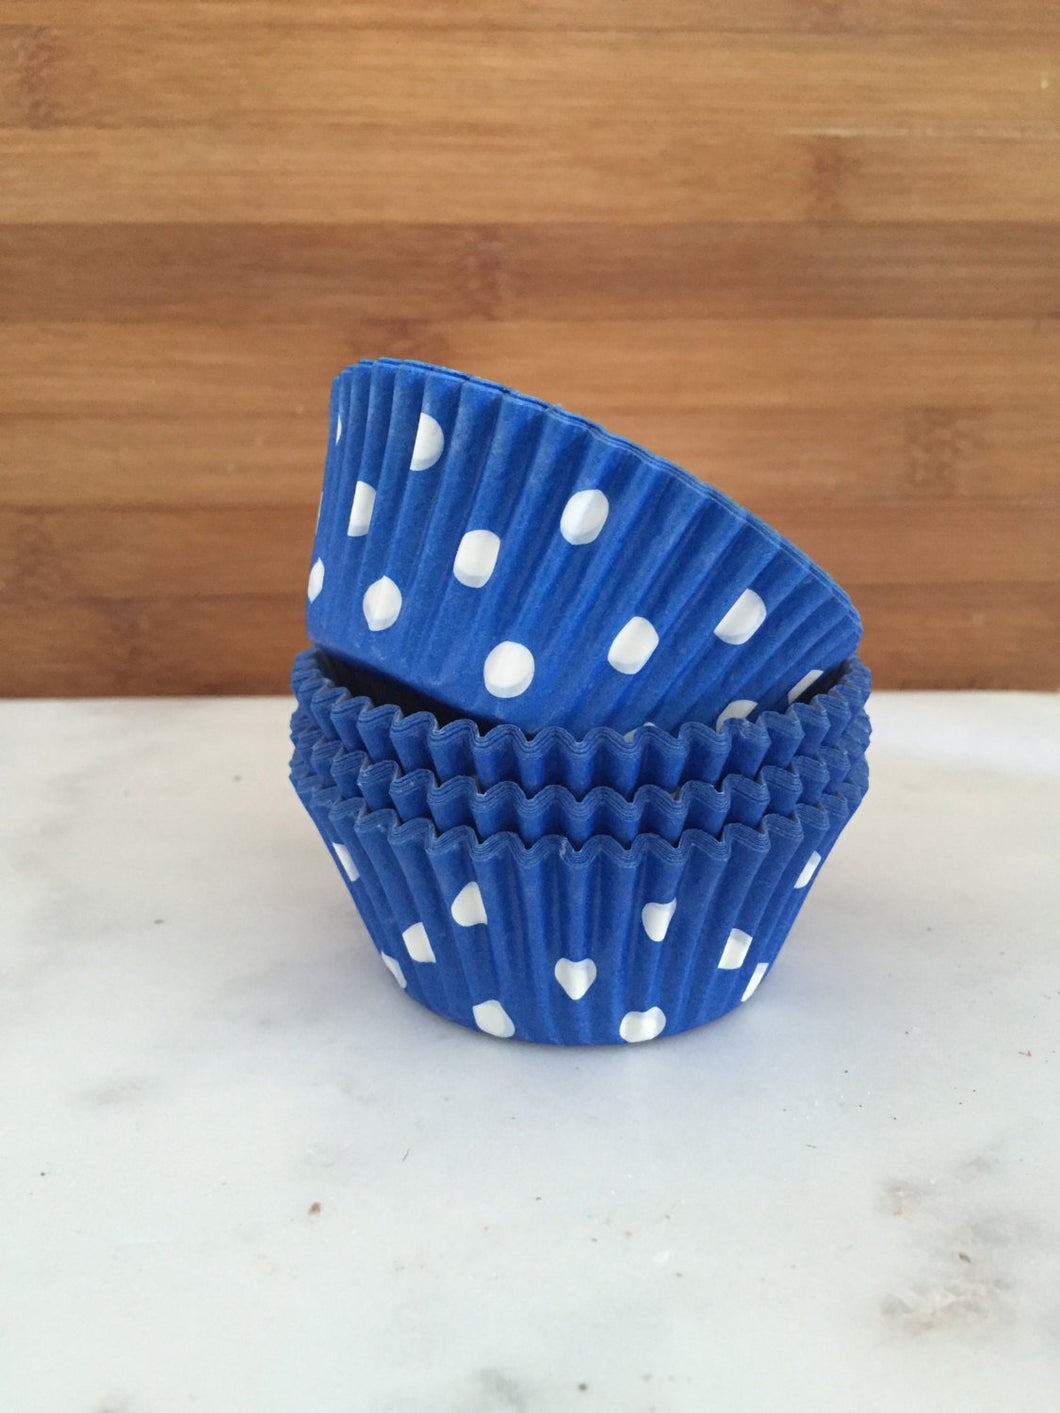 Blue Polka Dot Cupcake Liners, Standard Sized, Stay Bright Baking Cups (50)